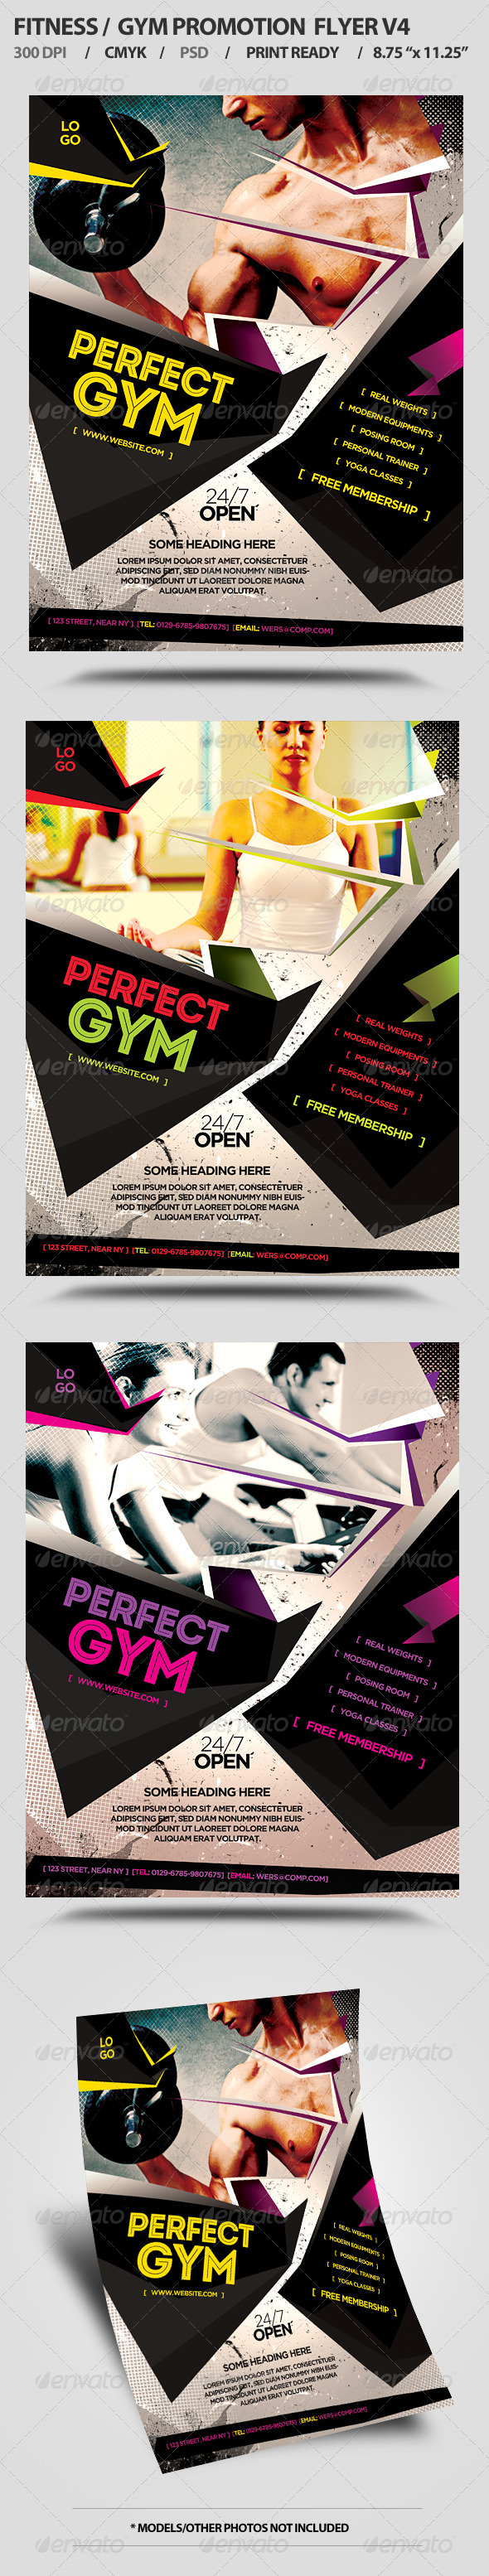 Fitness/Gym Business Promotion Flyer V4